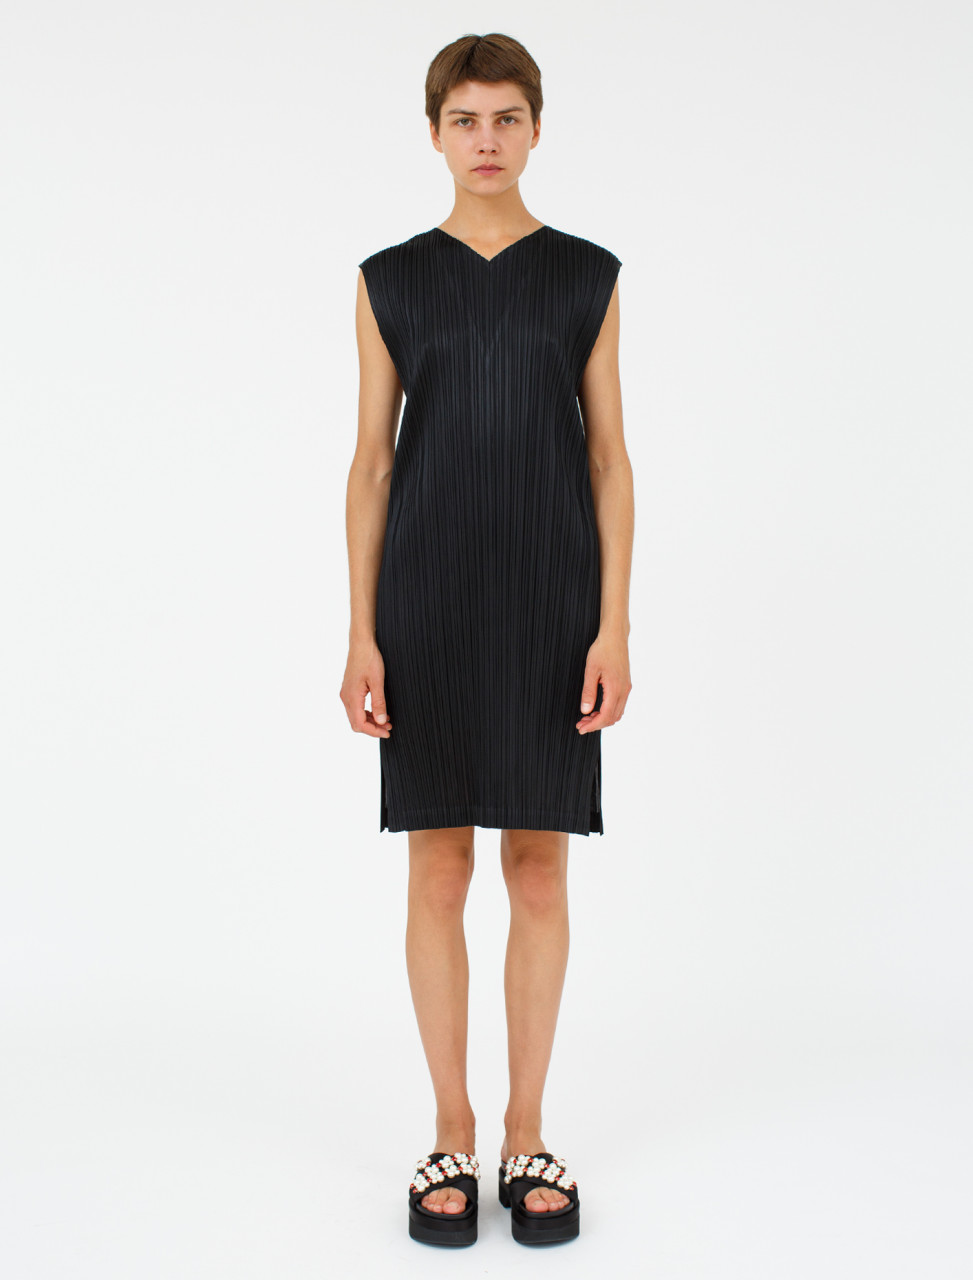 Pleated Dress in Black